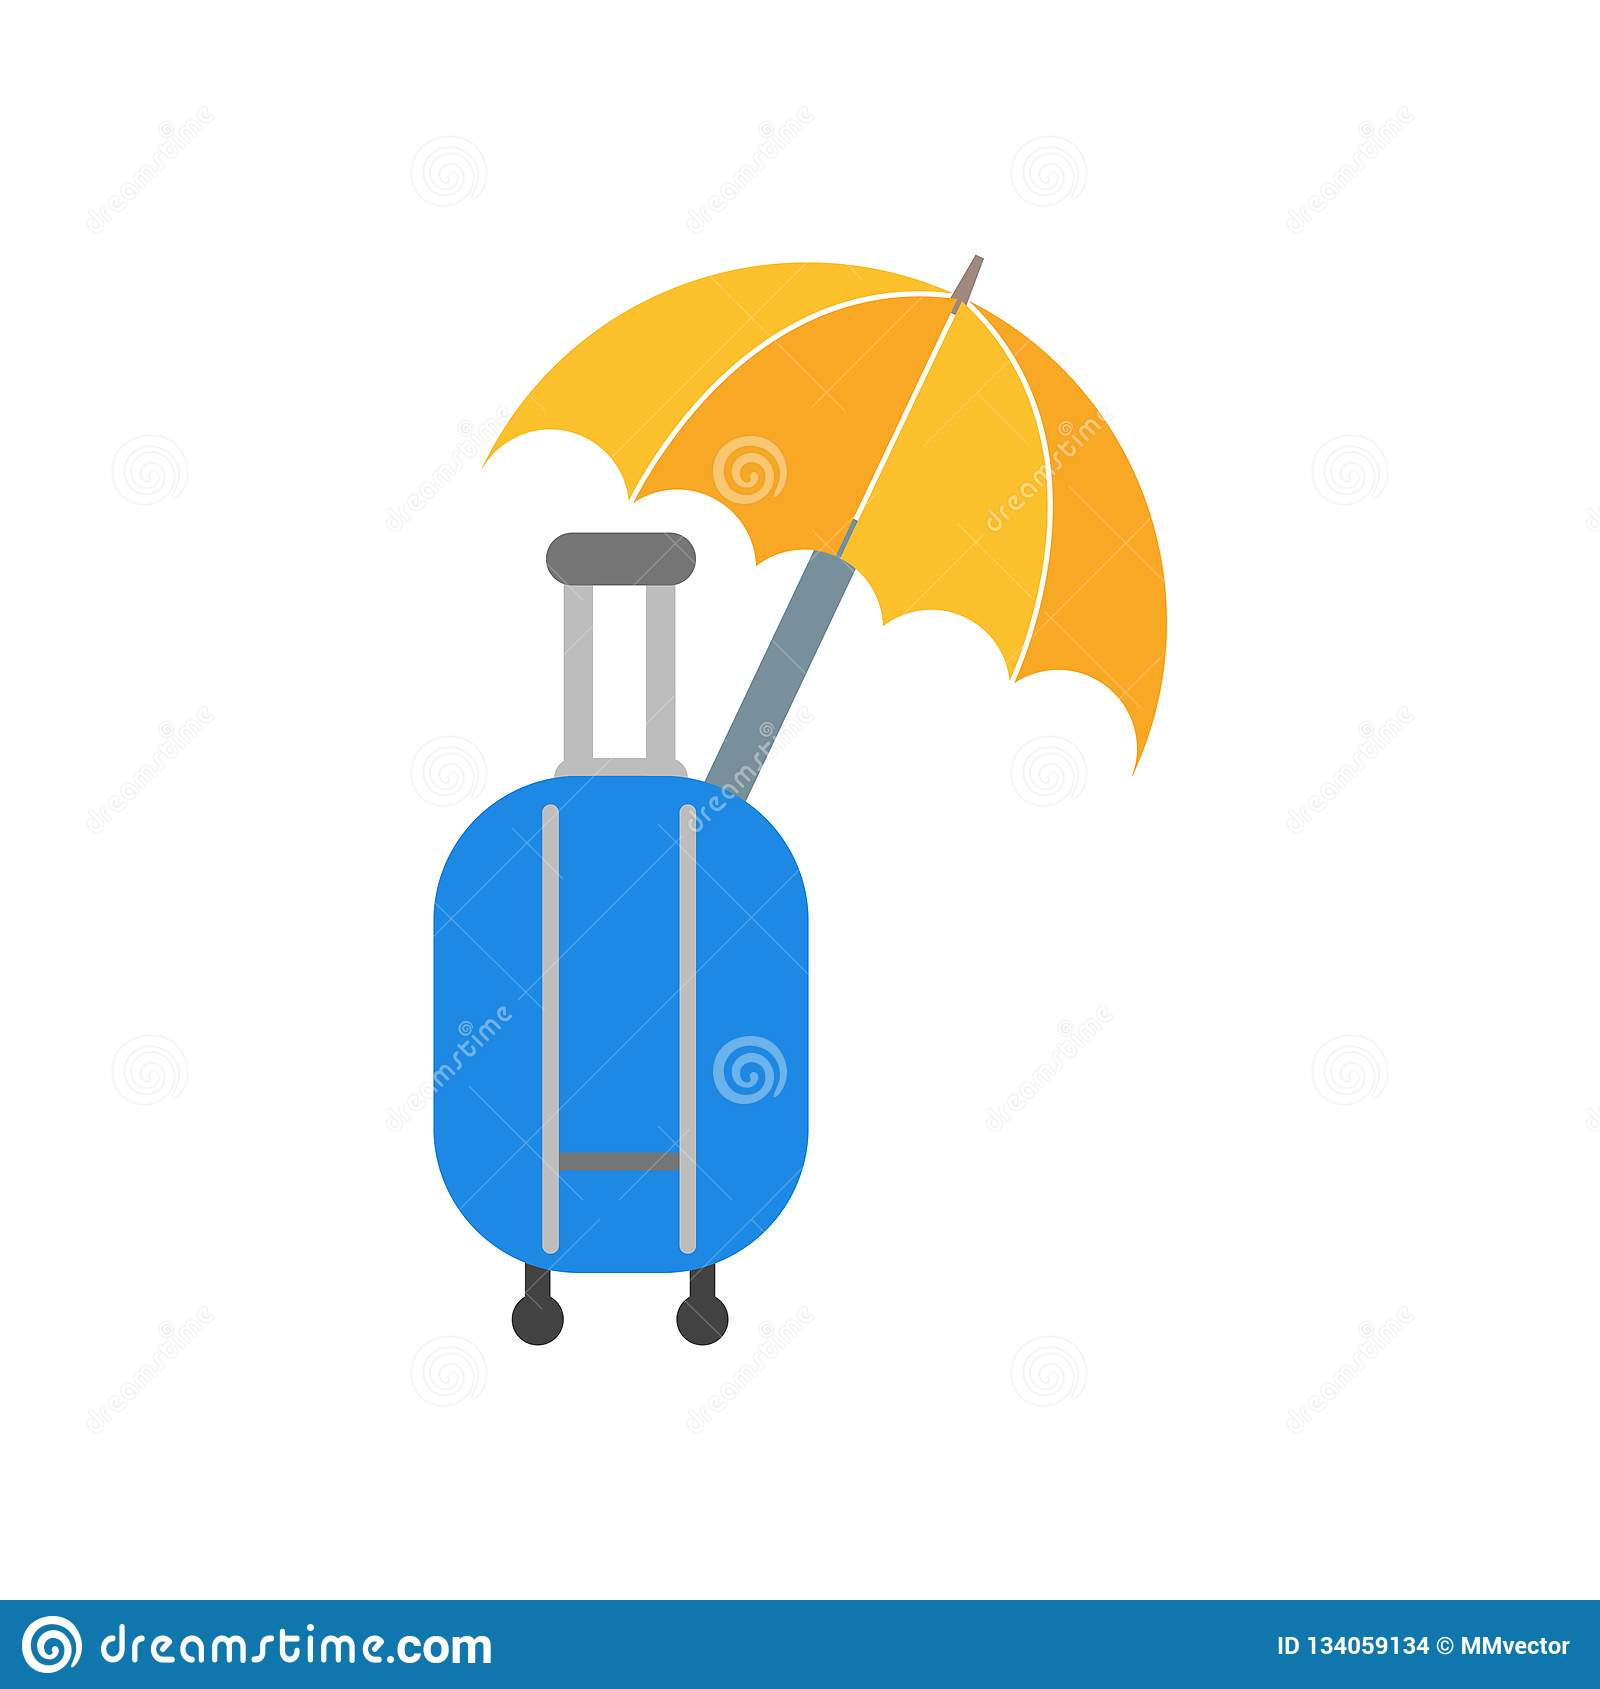 Travel insurance icon vector isolated on white background, Travel insurance sign , weather symbols